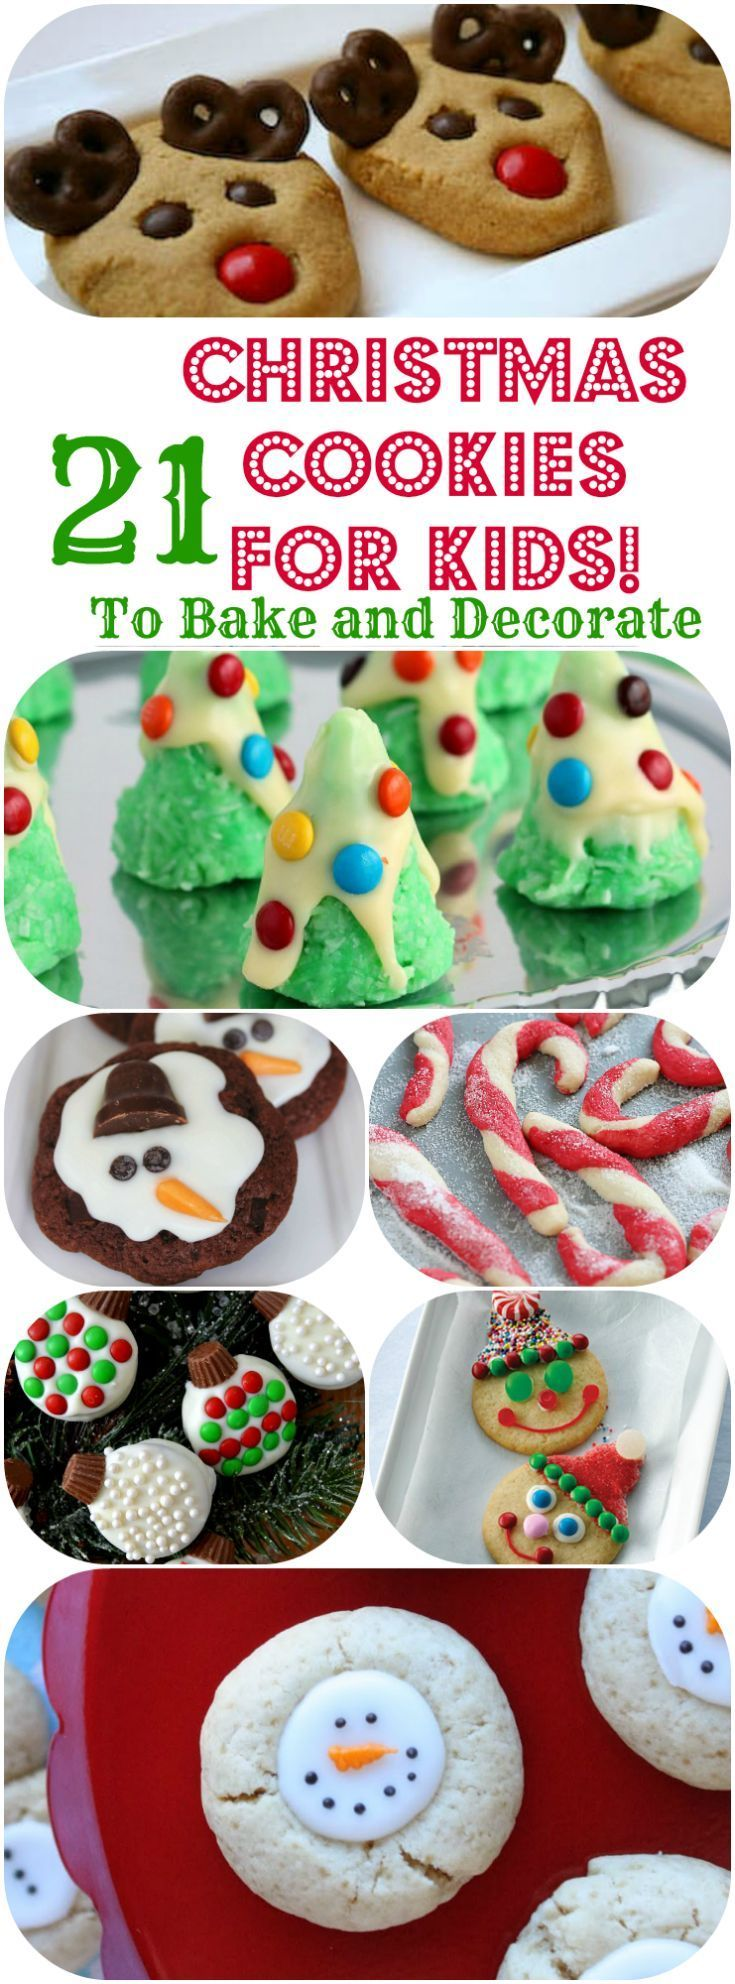 Easy Christmas Cookie recipes for Kids to Bake or Decorate! Perfect for…